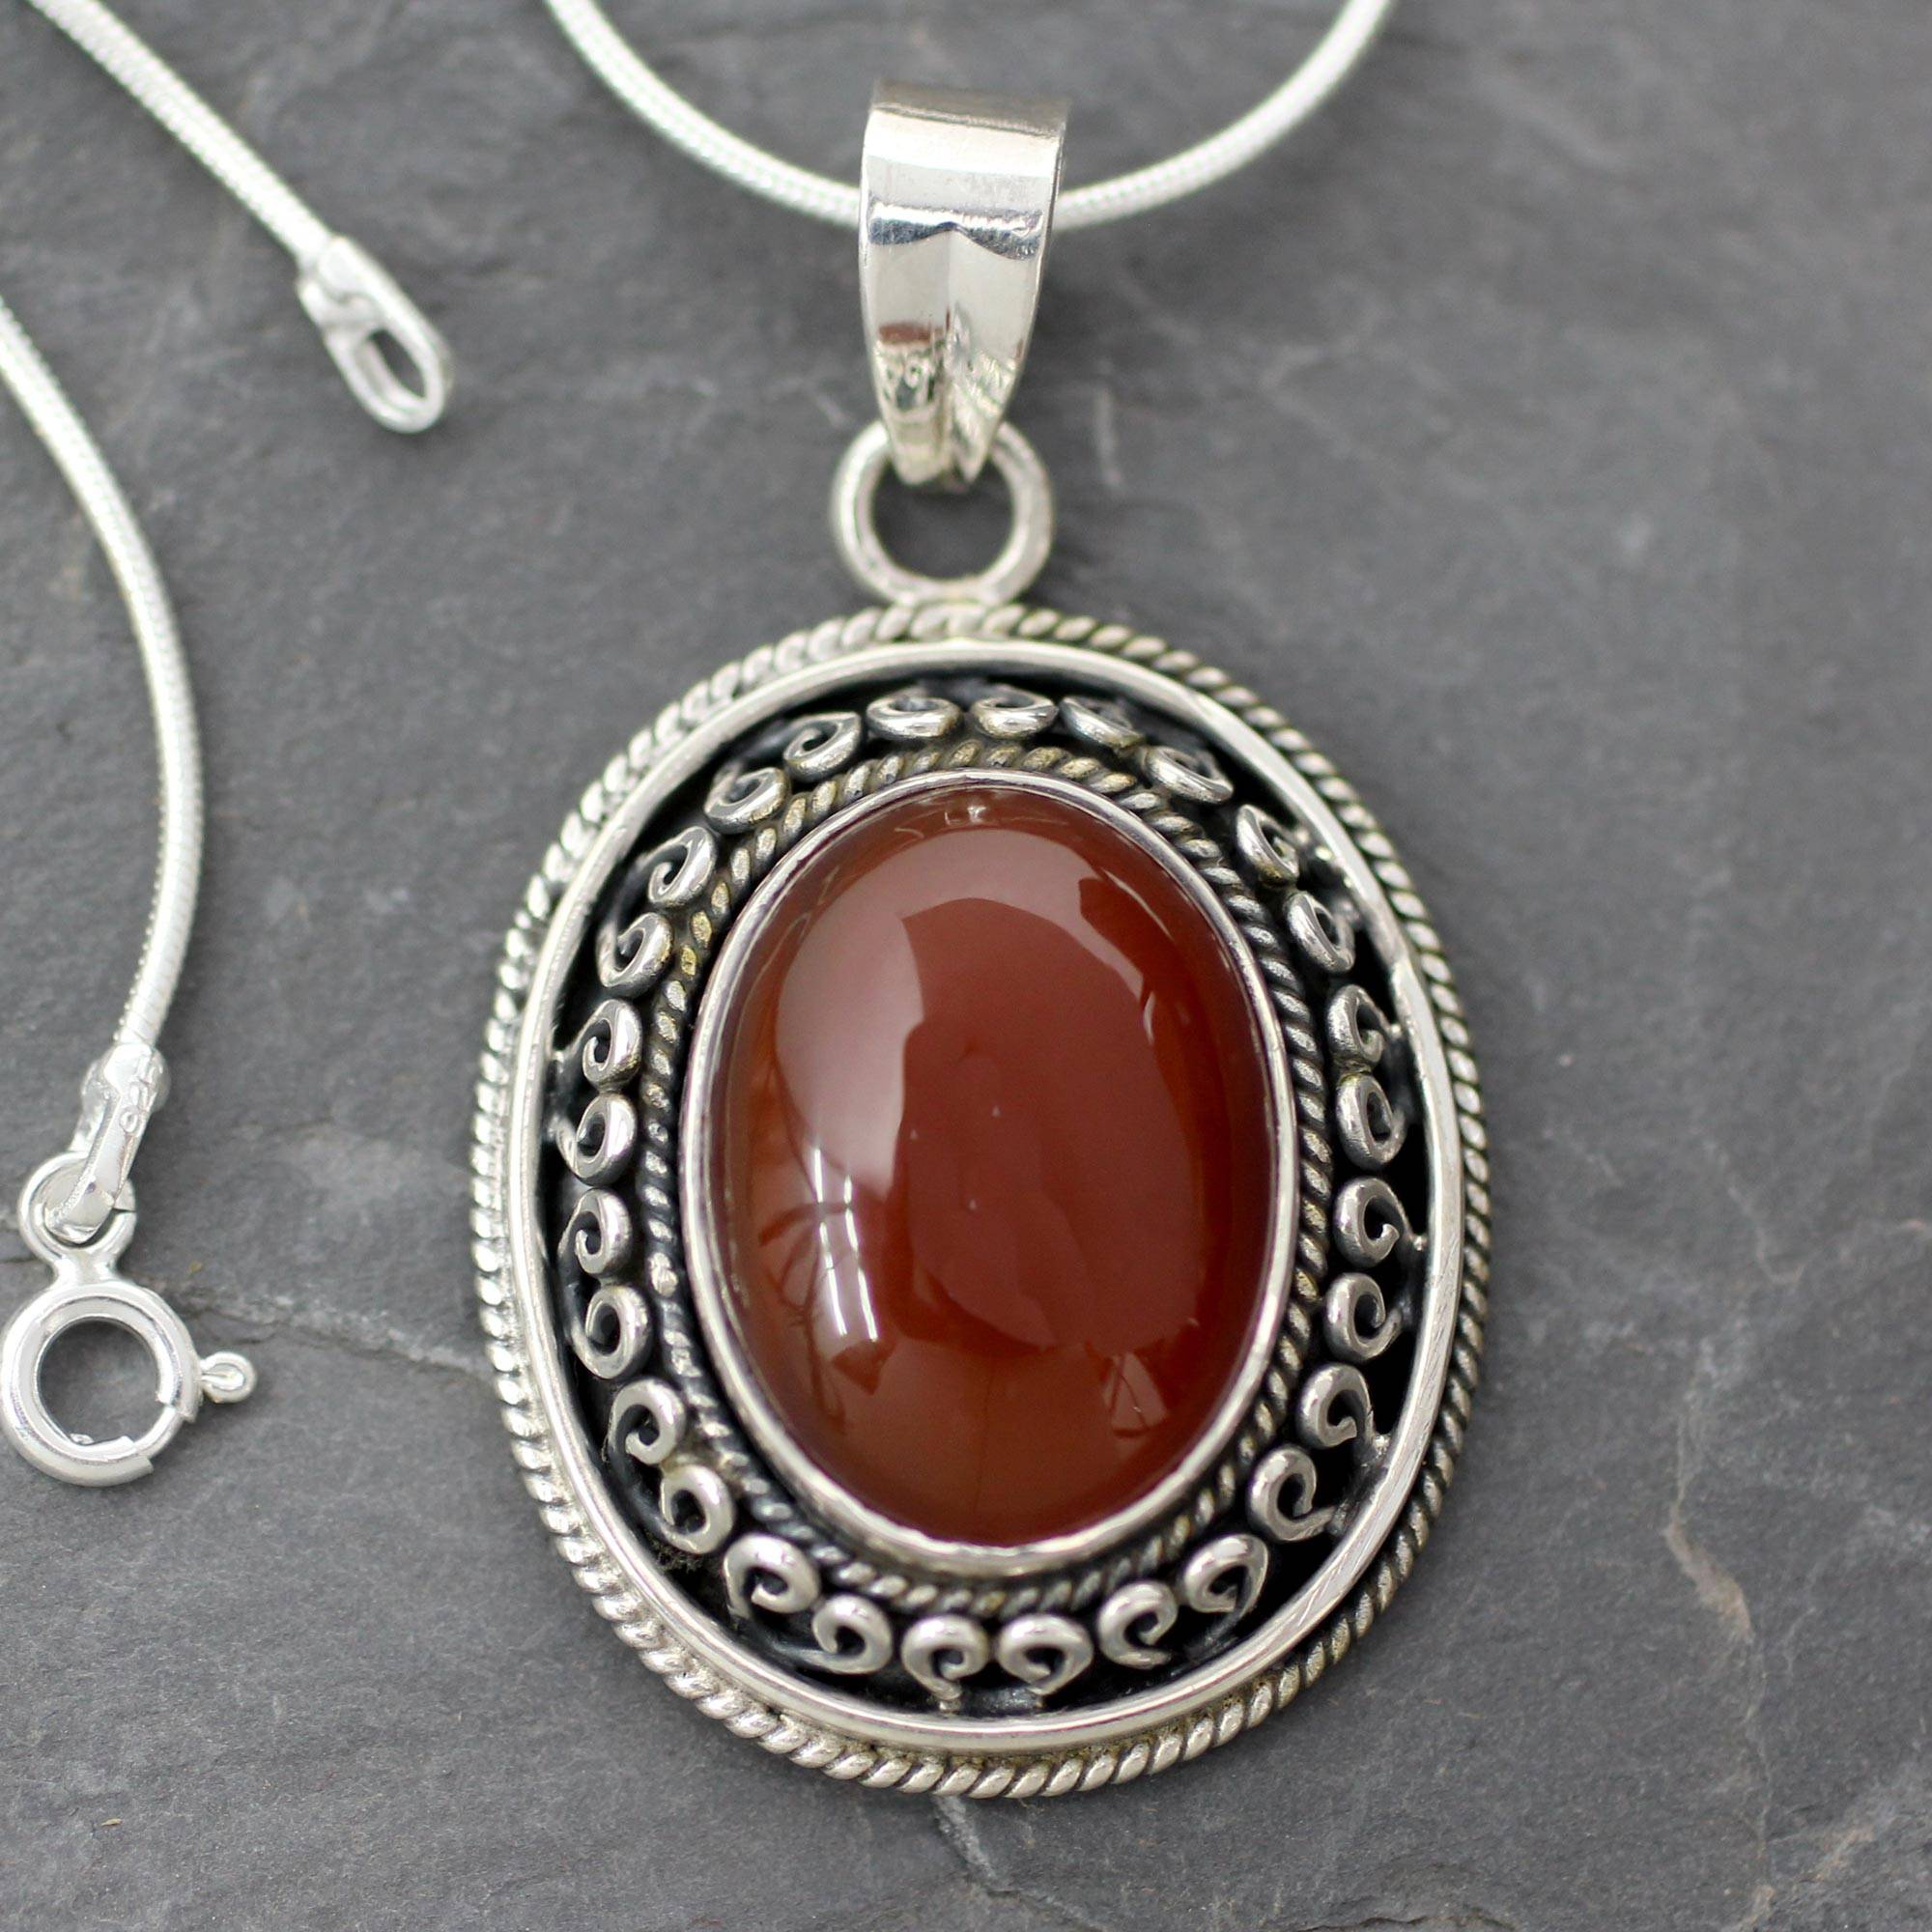 15.75 Tradition NOVICA Onyx .925 Sterling Silver Pendant Necklace